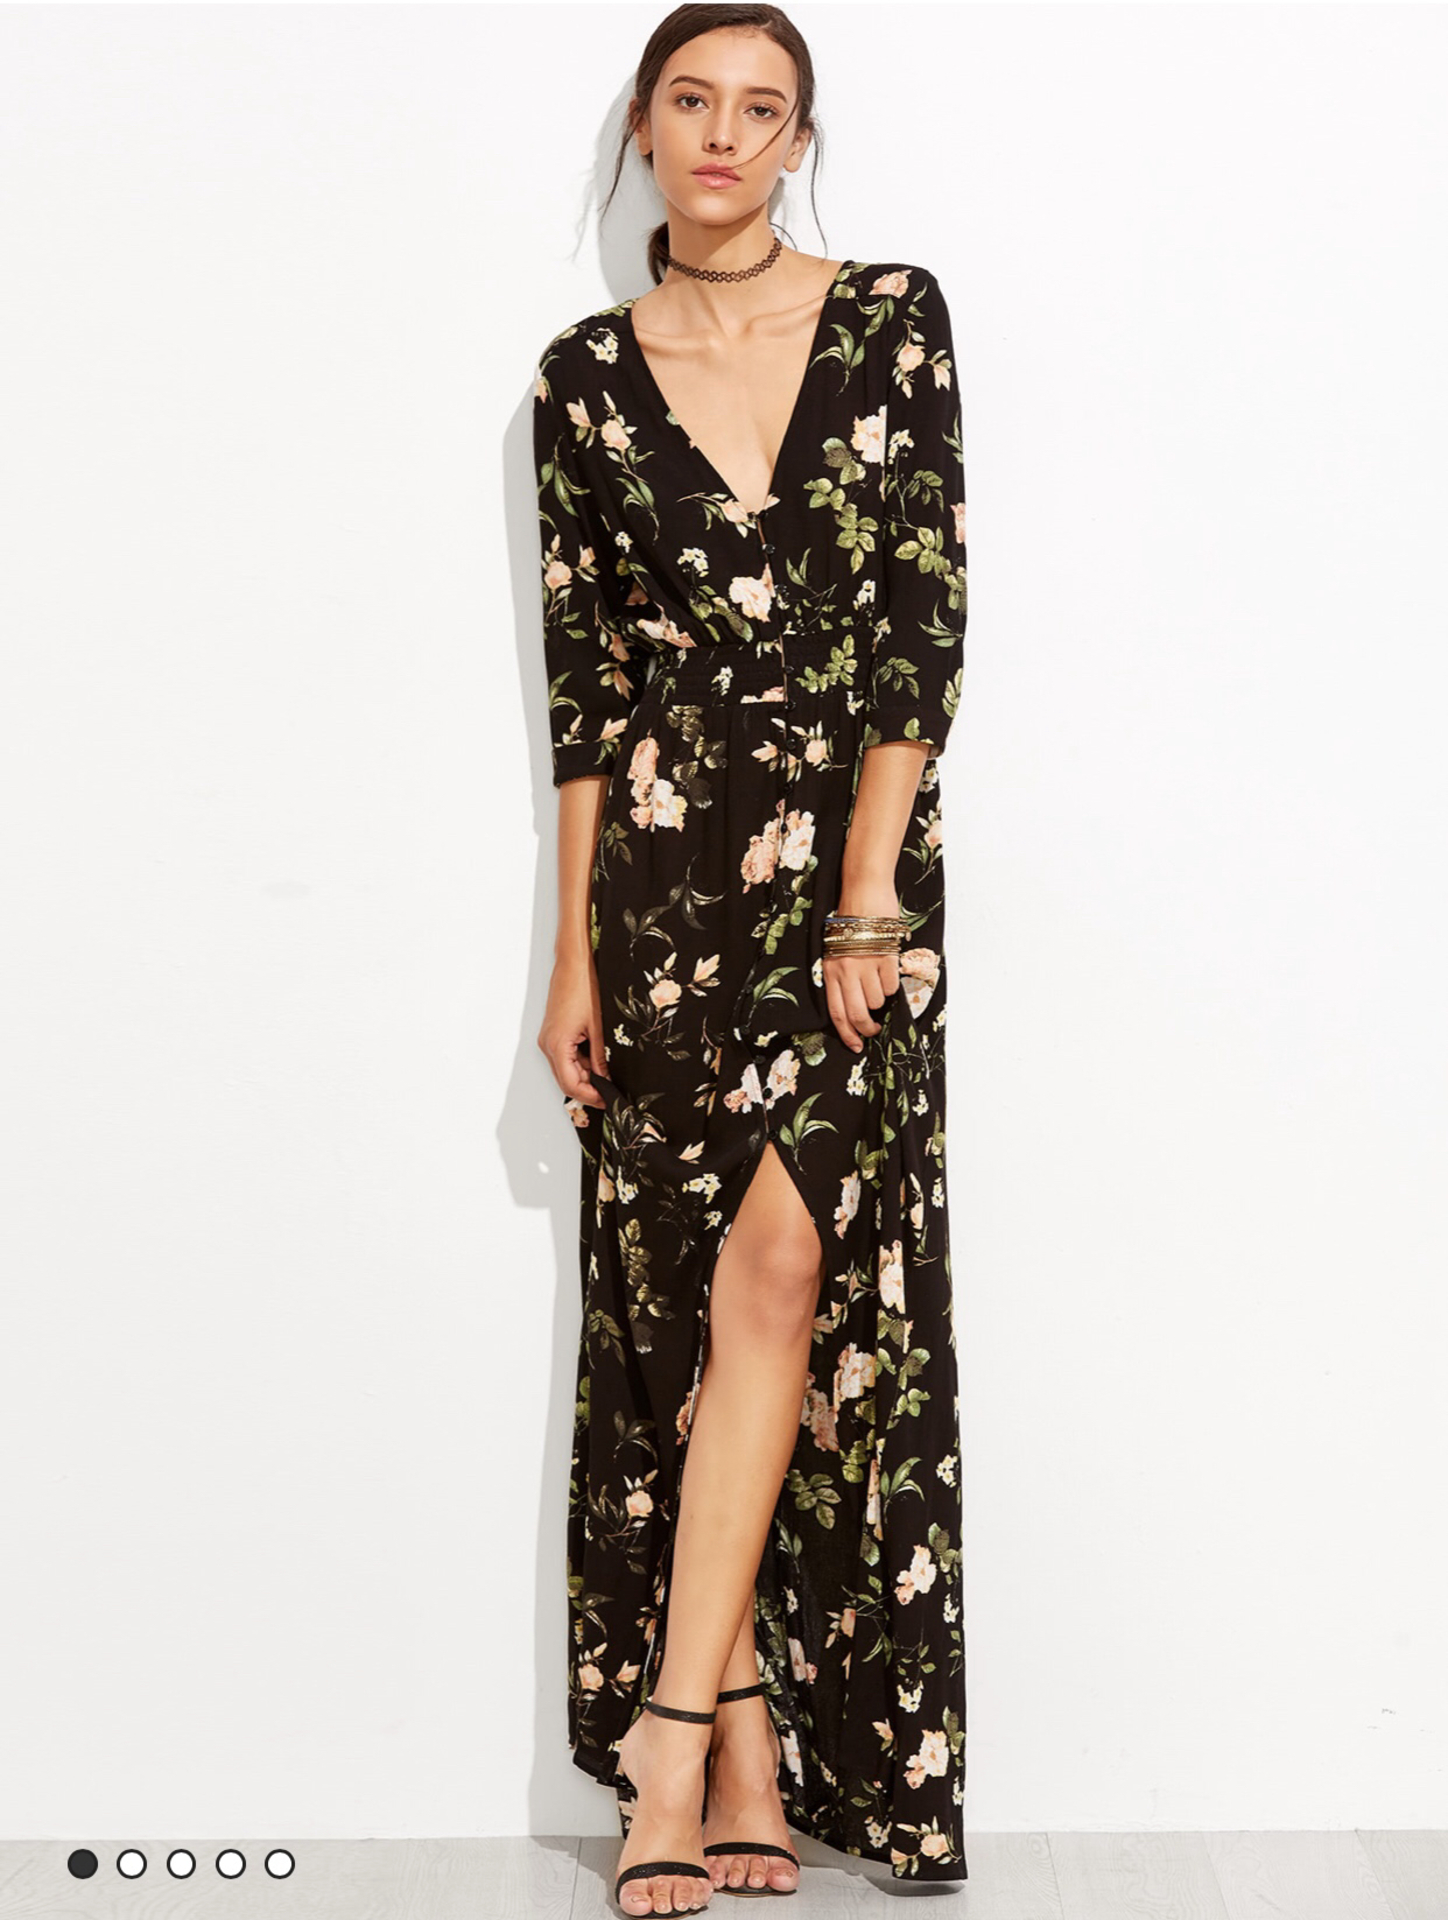 Shein LookBook  image